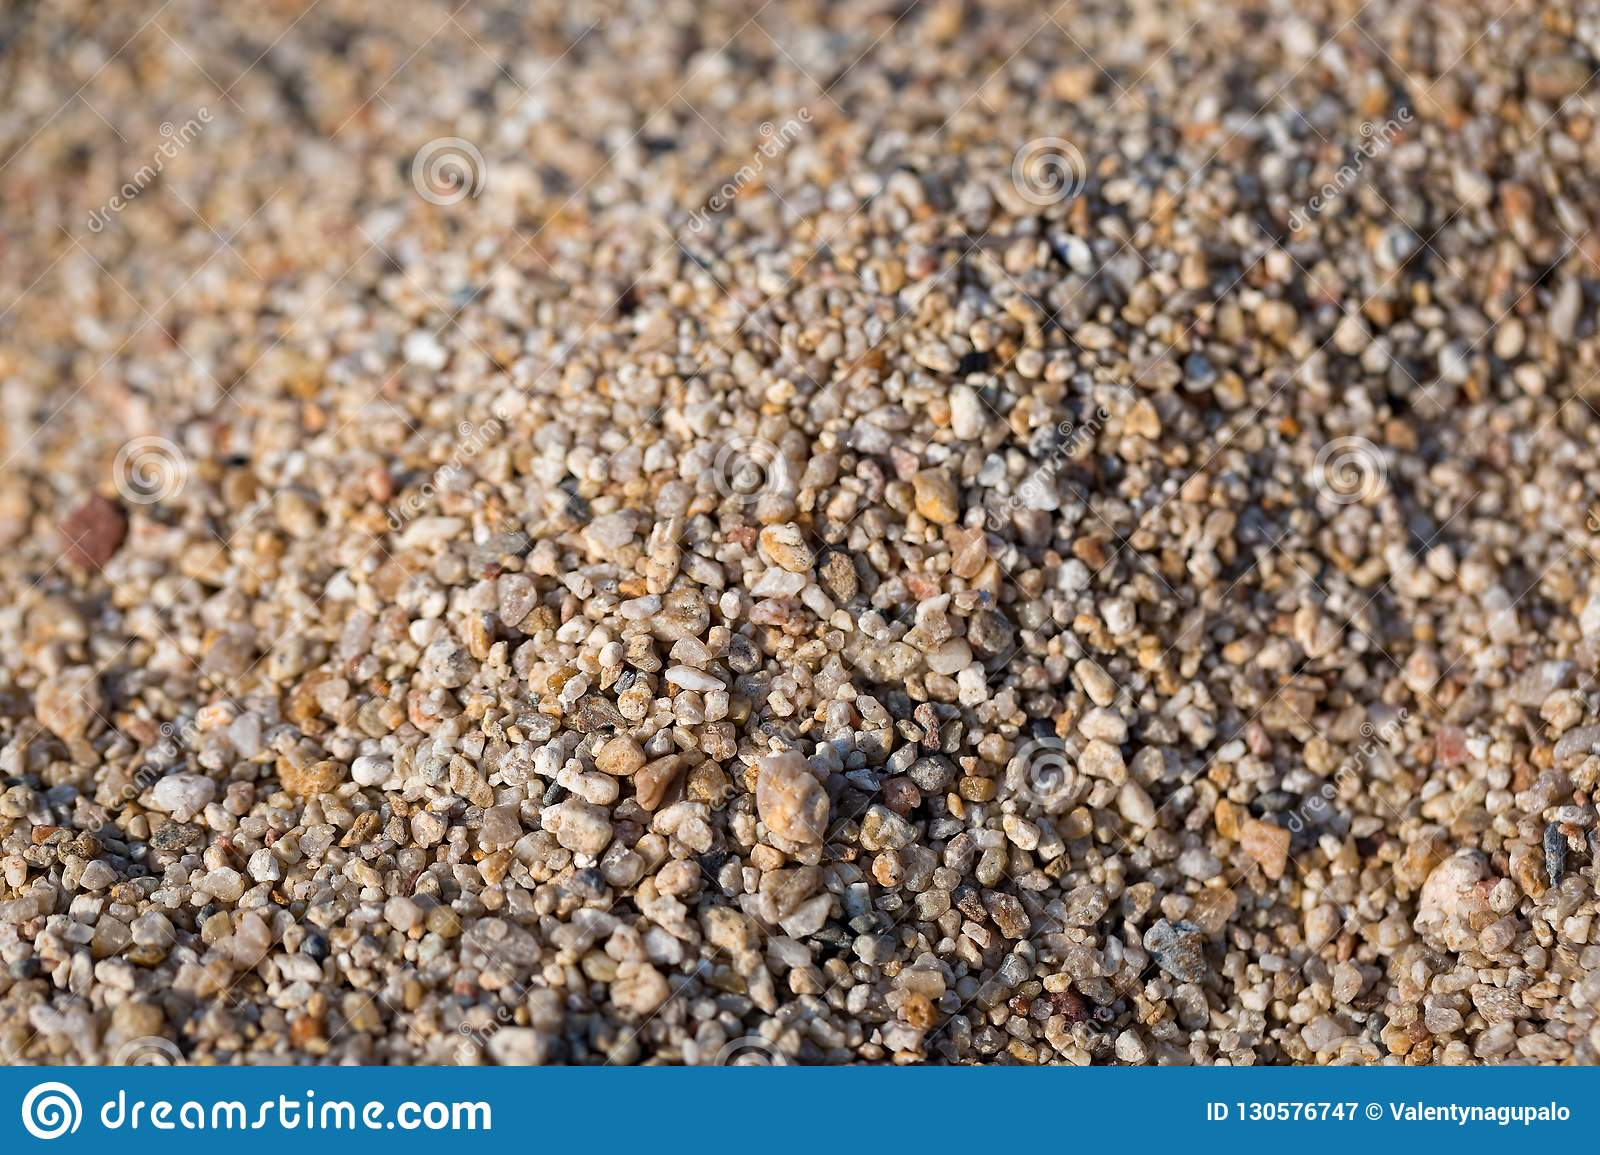 Closeup of sand on the beach. Crystals of sea sand as background. Macro